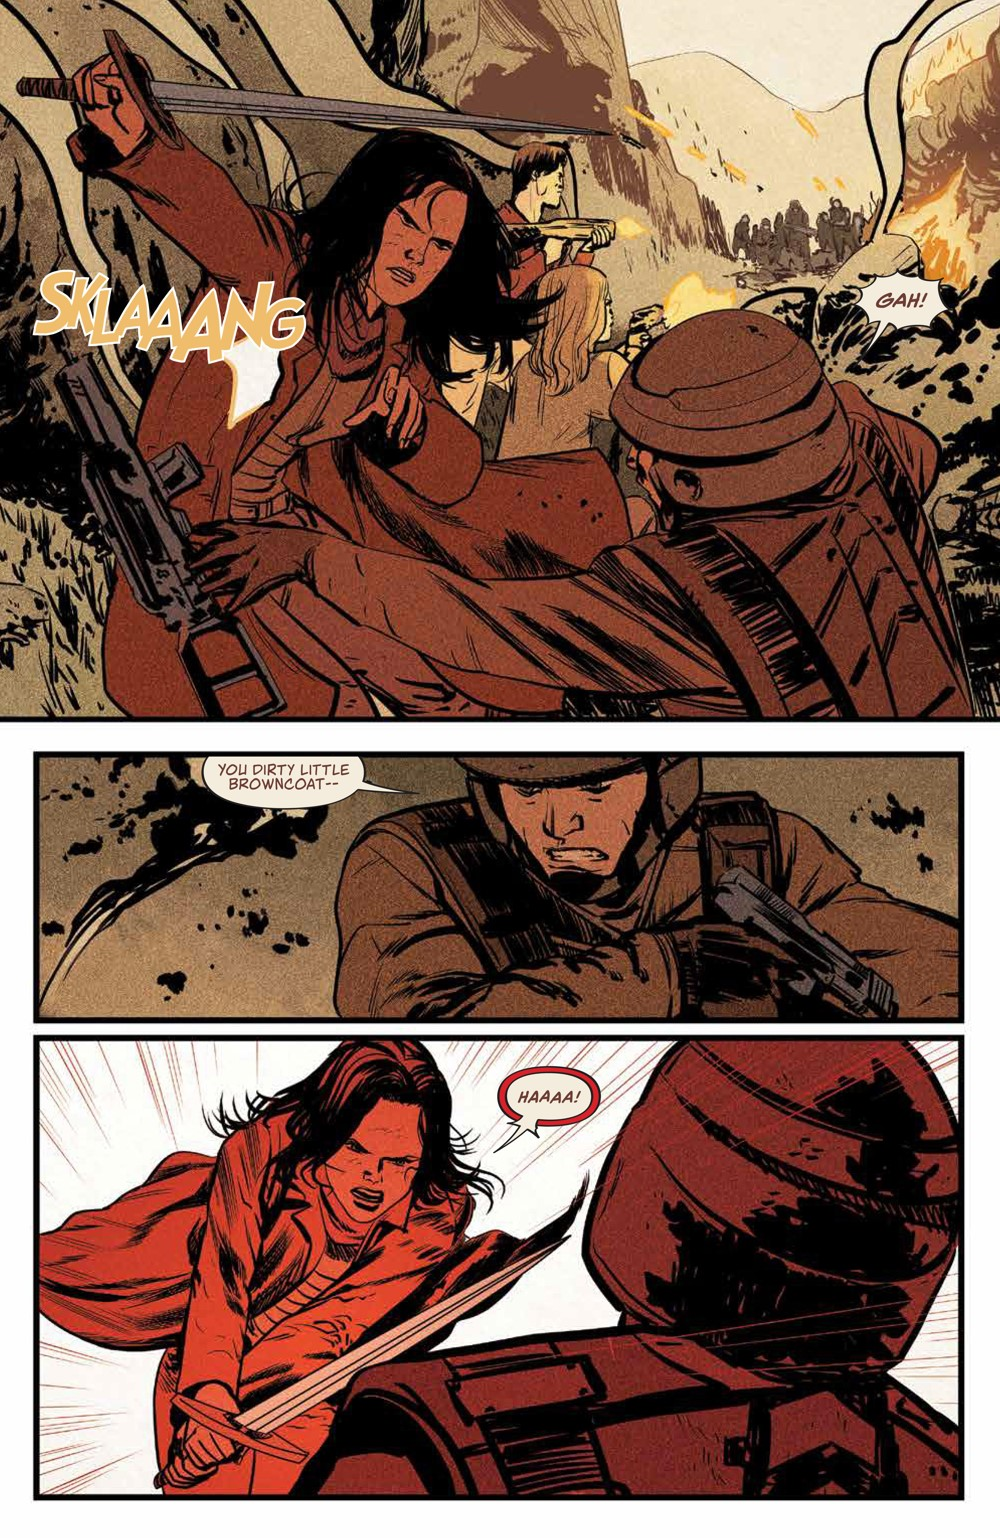 Firefly_031_PRESS_5 ComicList Previews: FIREFLY #31